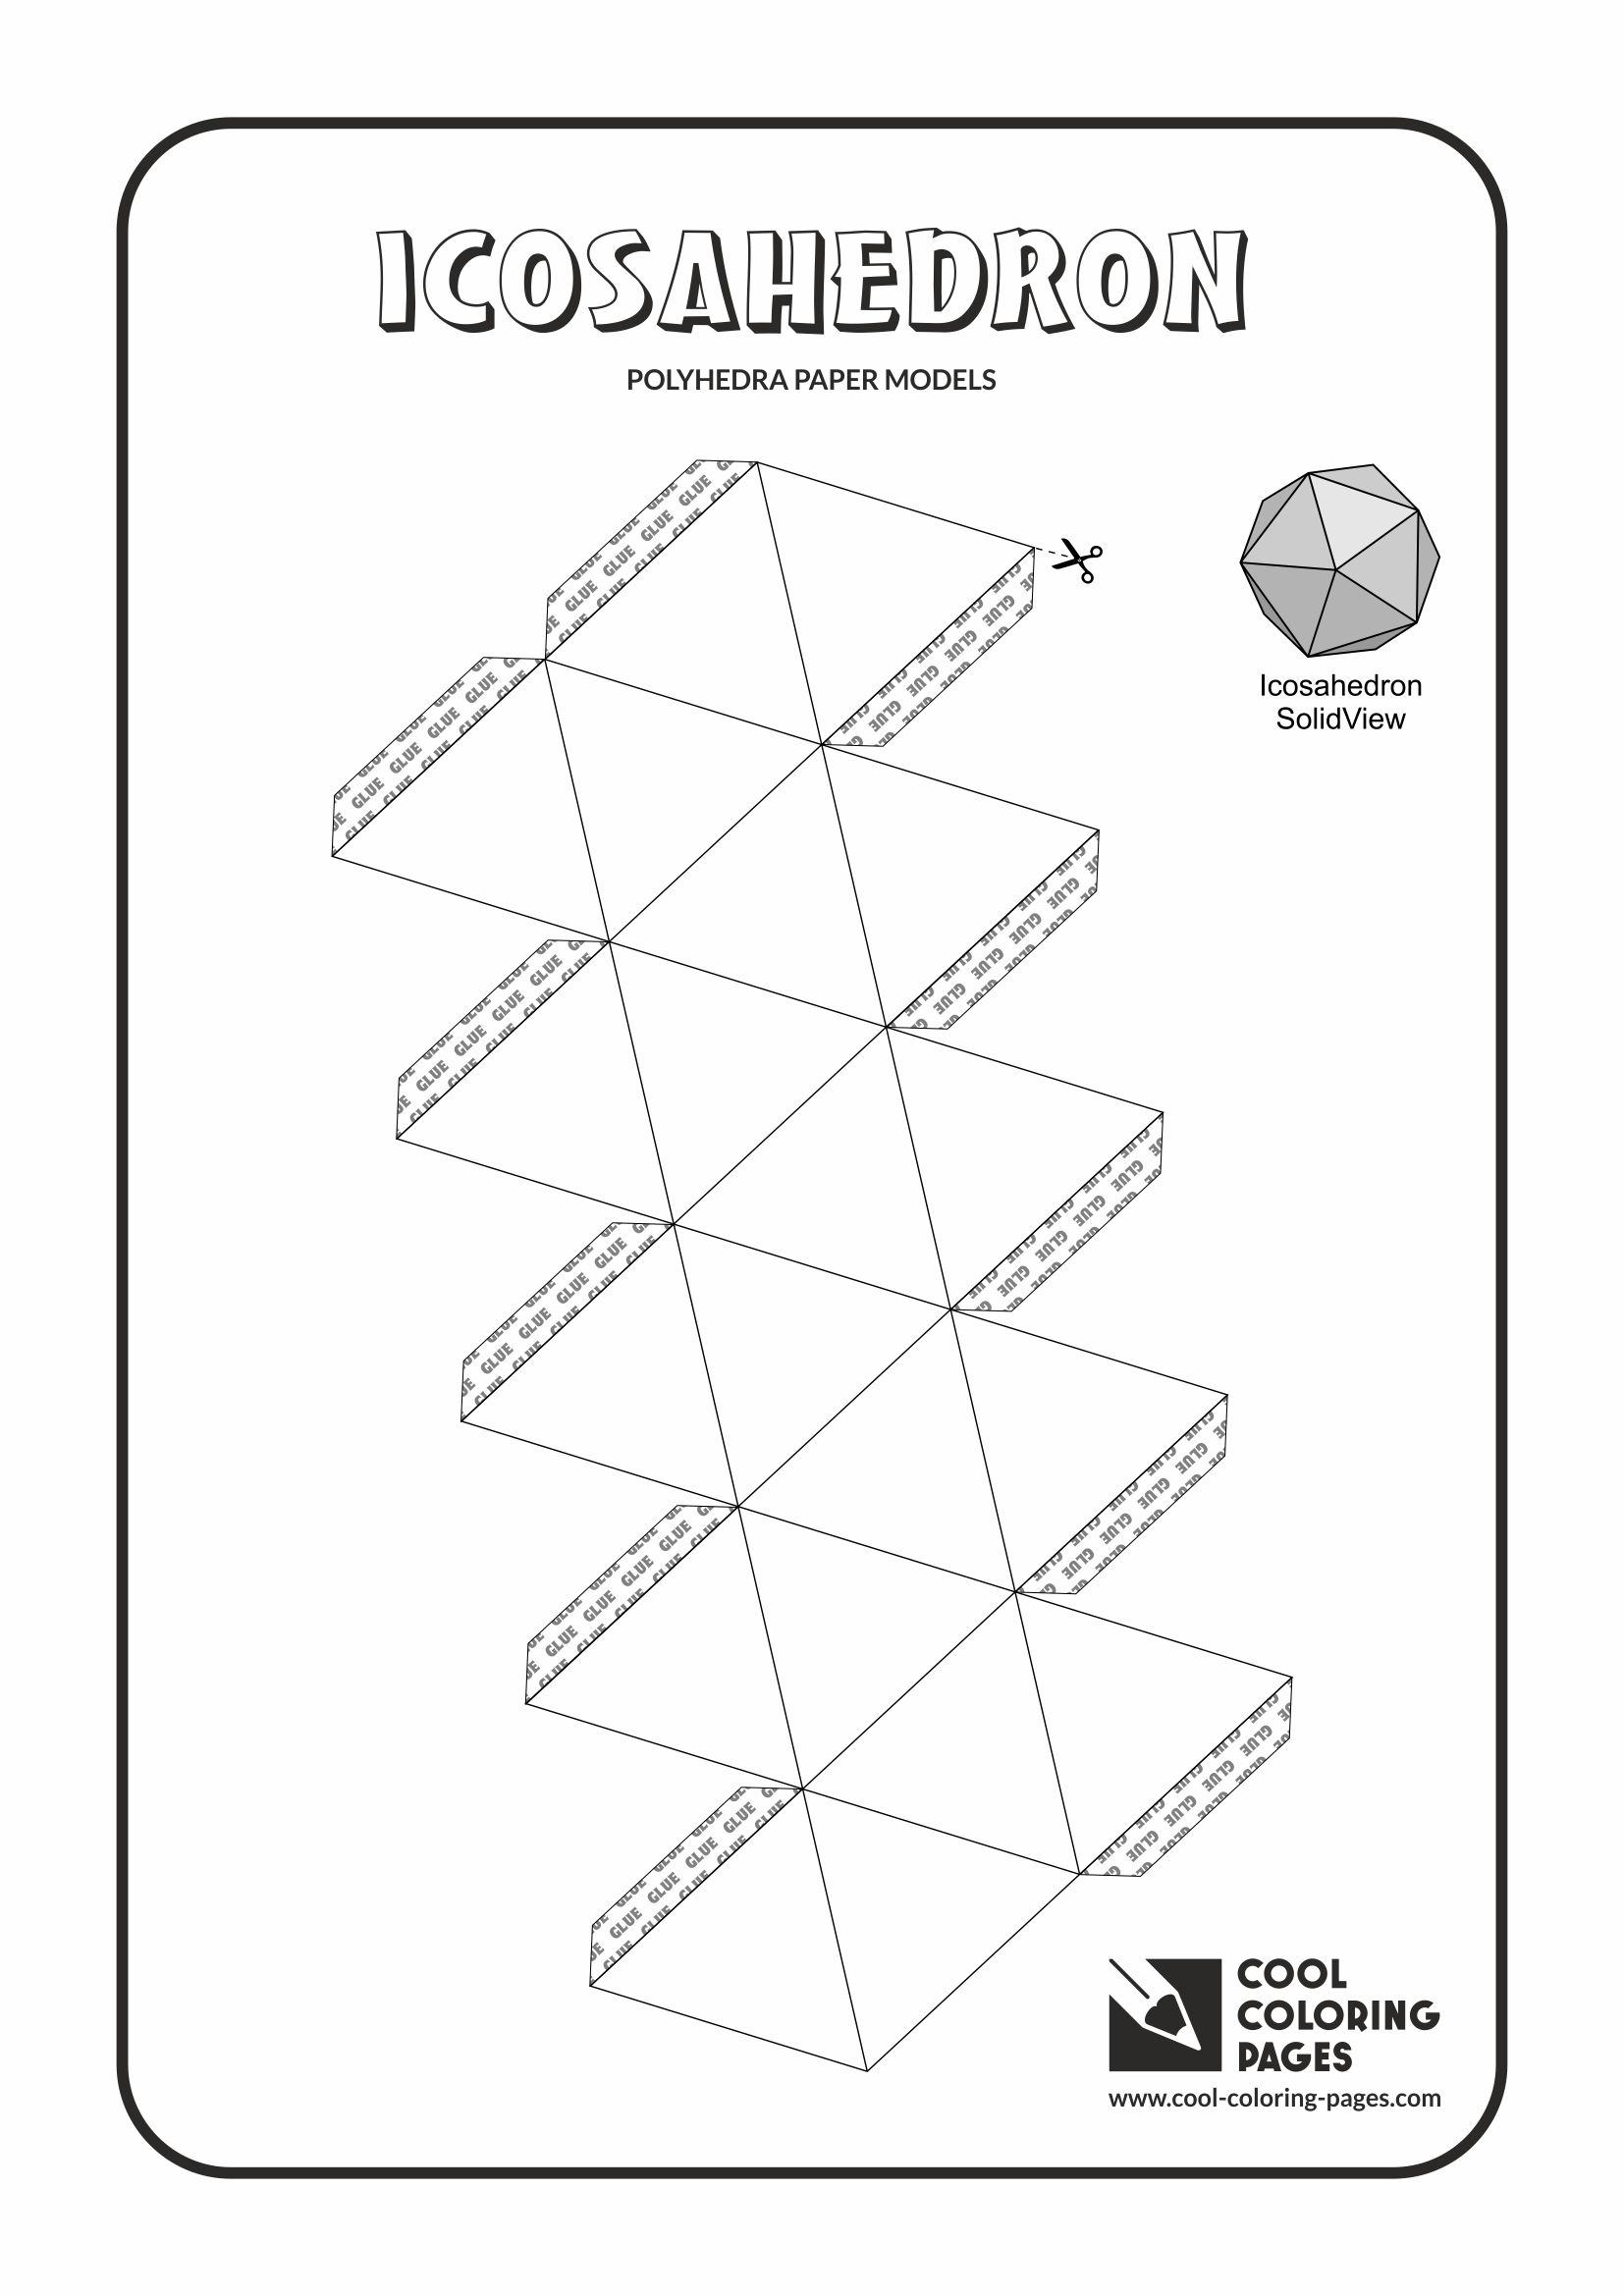 Cool Coloring Pages - Paper models of polyhedra / Paper solids models / Icosahedron